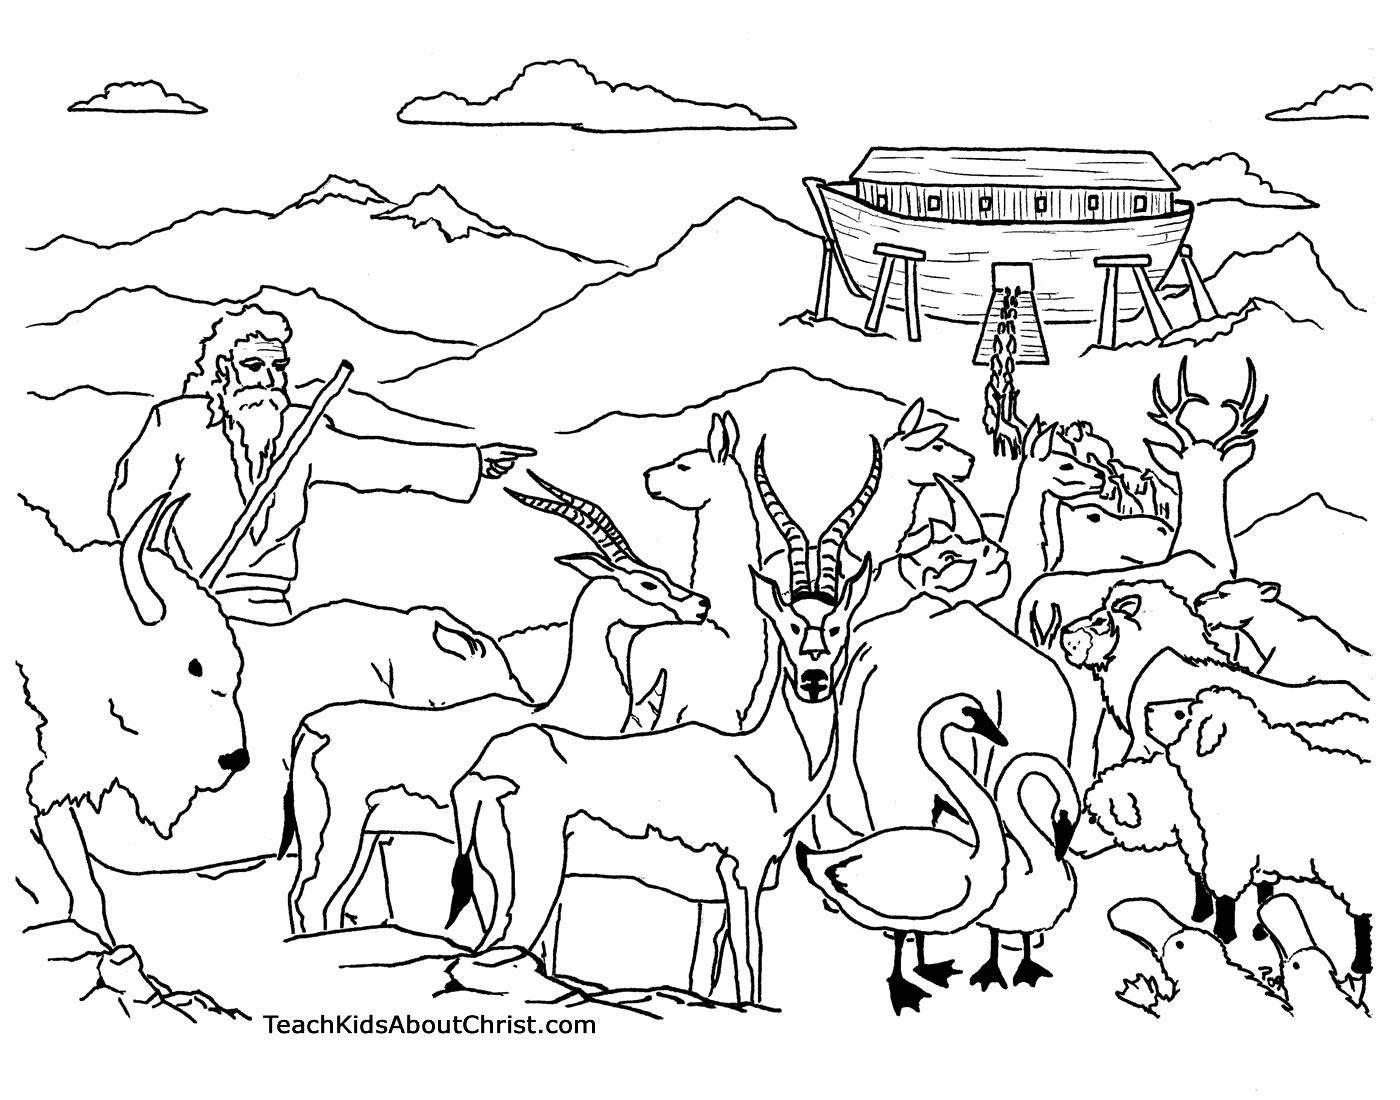 noah and the ark coloring page free christian coloring pages noahs ark coloring pages and coloring ark noah the page